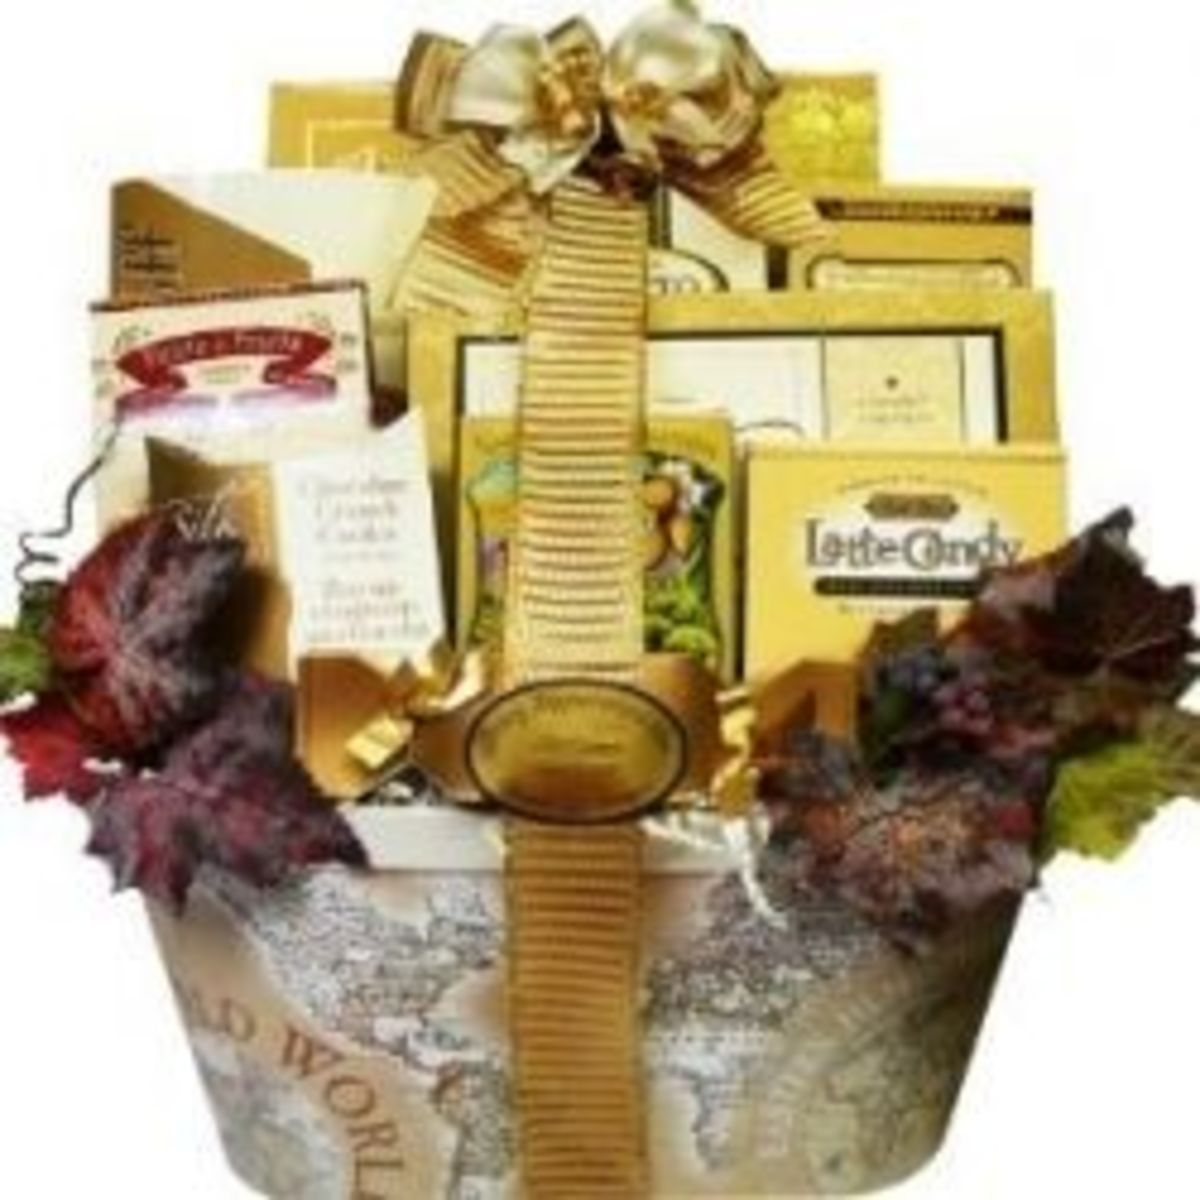 ... gifts are tied with pretty ribbons and it includes a personalized gift